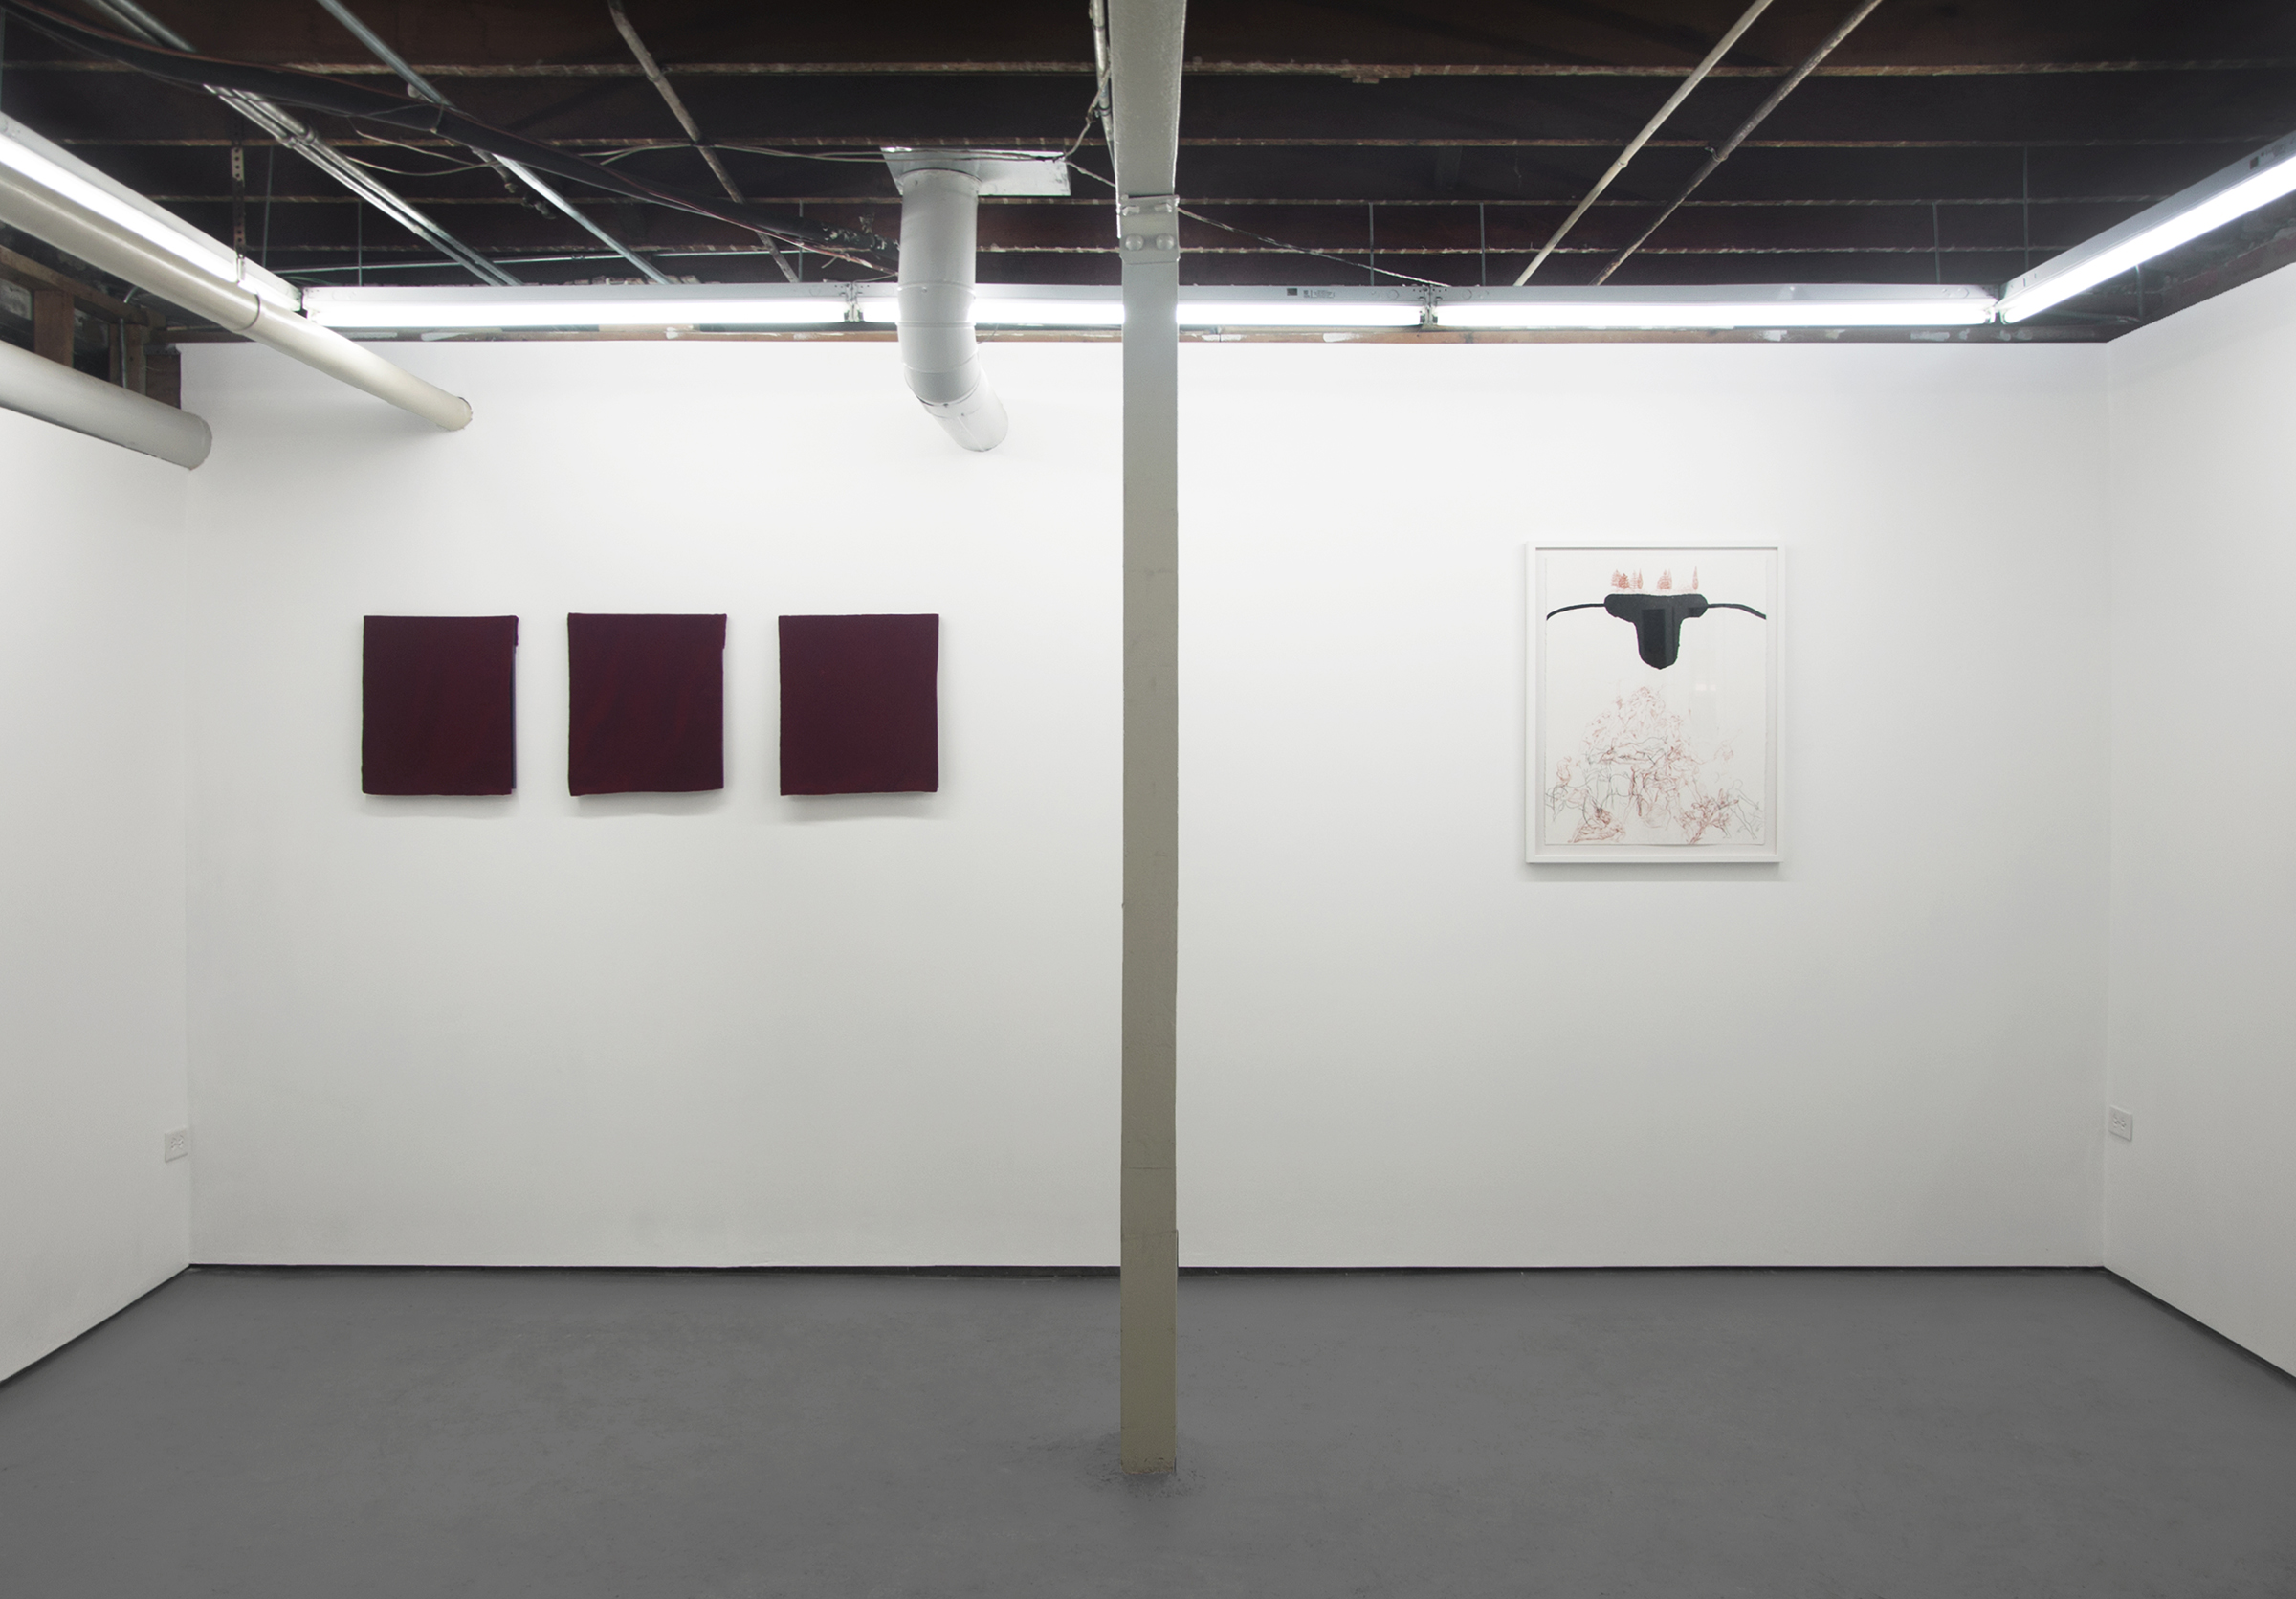 "Frontward Tilt (from left to right), Jeremy Biles, ""Ariadne's Thread"", 2015, digital print with graphite and wax crayon on newsprint with velvet veil; Jeremy Biles, ""The Sensation of Time"", 2015, digital print with graphite, colored pencil, and collage on newsprint with velvet veil; Jeremy Biles, 2015, ""Mirror of Tauromachy"", digital print with graphite, colored pencil, and semen on newsprint with velvet veil; Rebecca Walz + Ryan M. Pfeiffer, 2015, ""The Annunciation"", Chalk Lead & Charcoal."